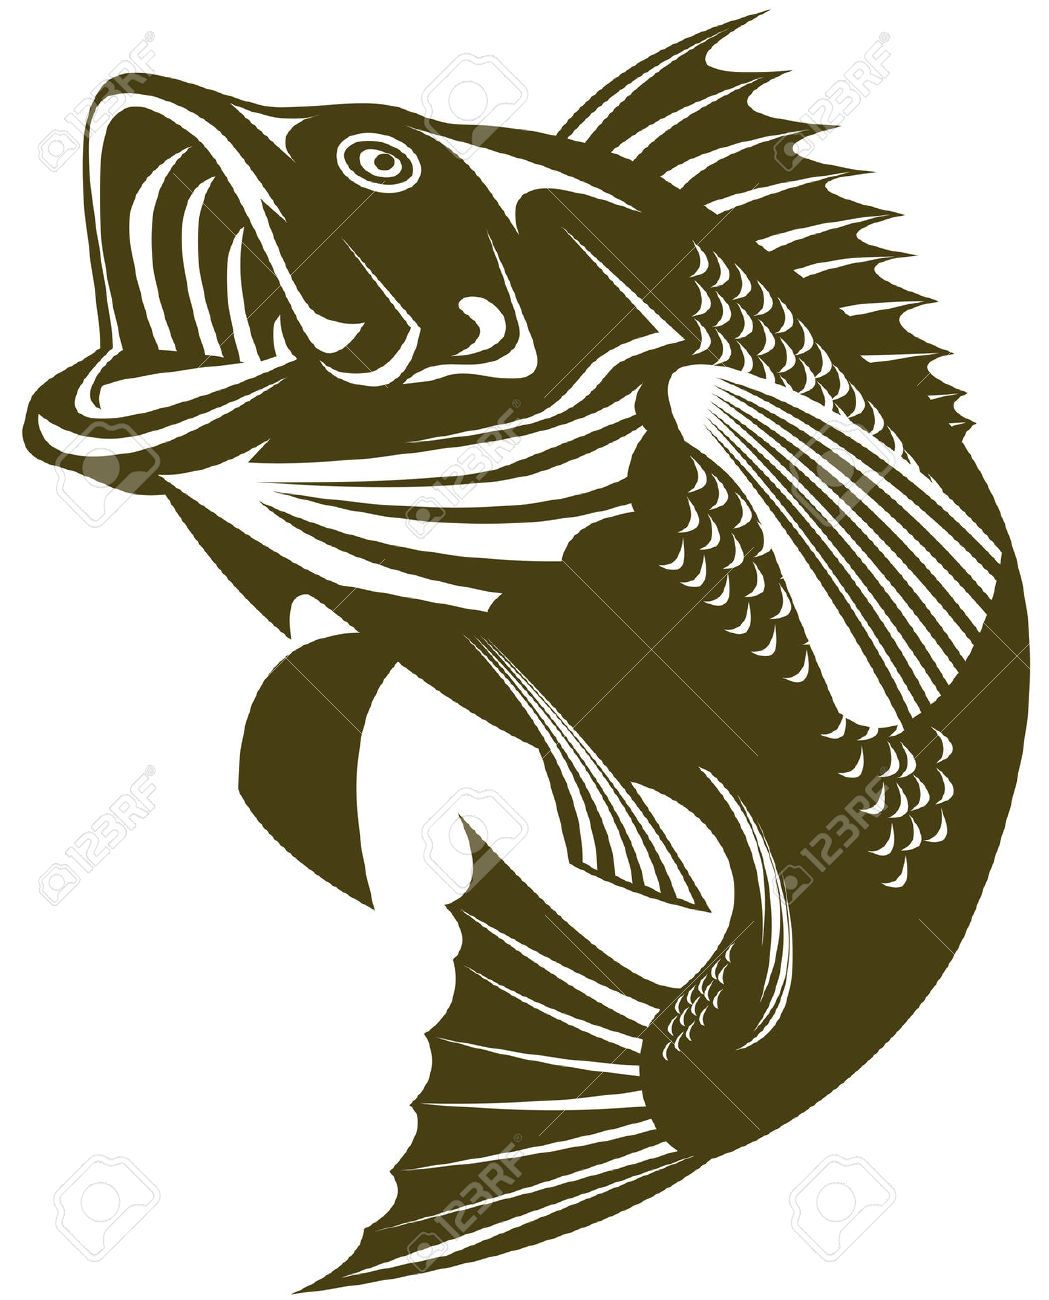 Free large mouth bass chasing a lure clipart. Largemouth cliparts stock vector